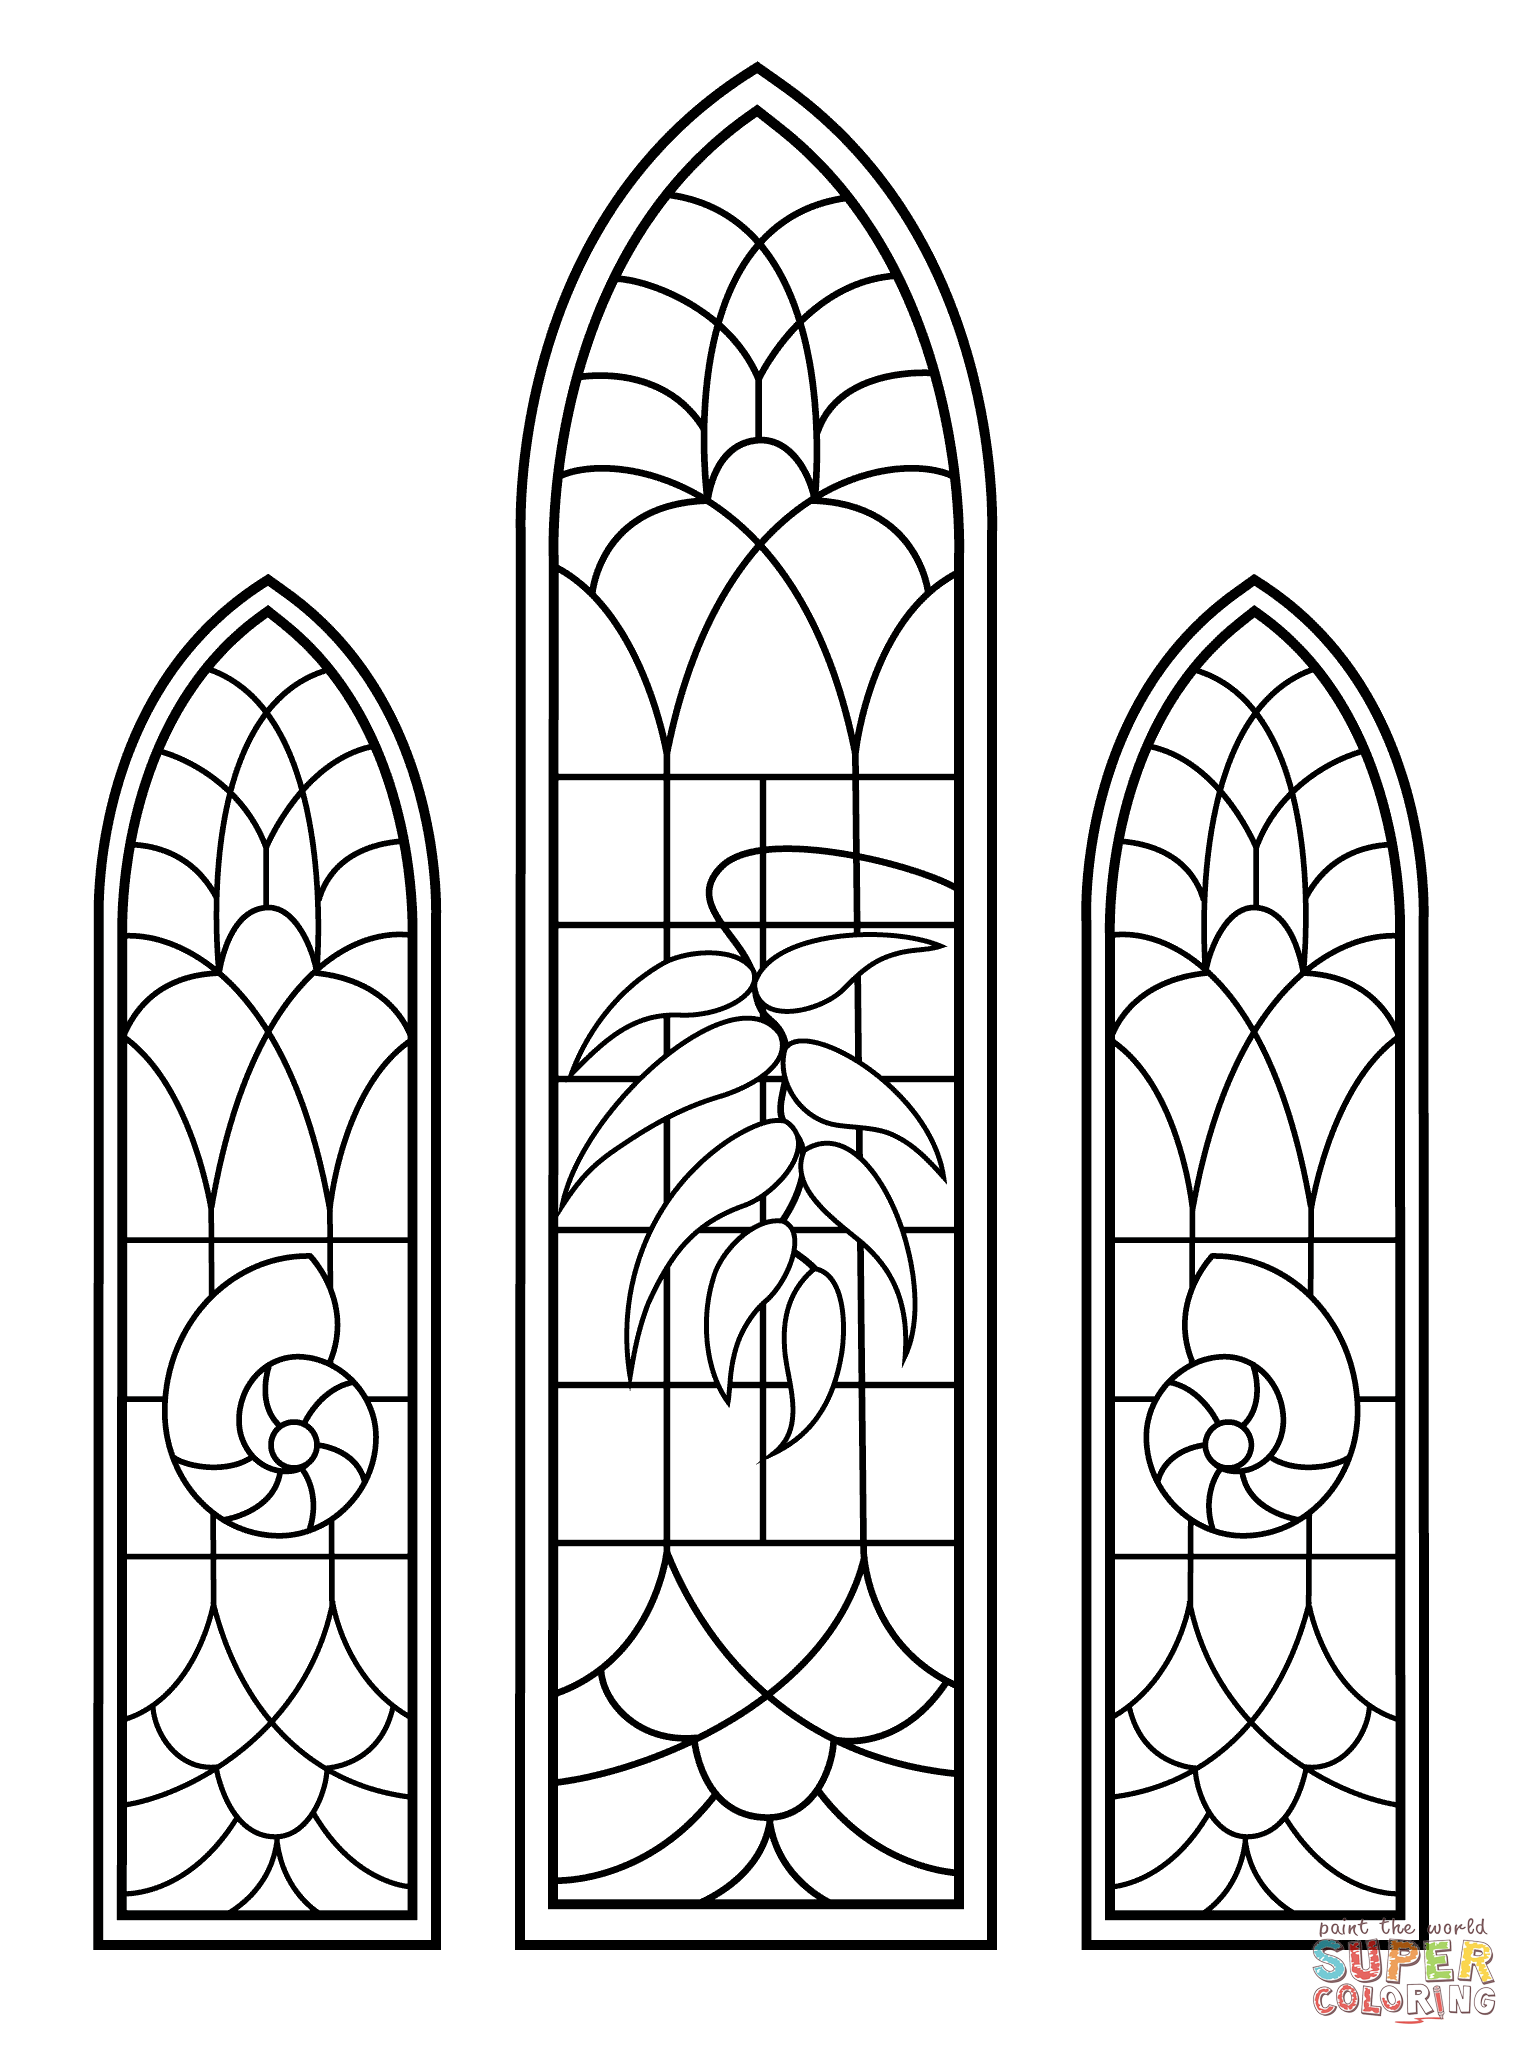 Stained Glass coloring pages.